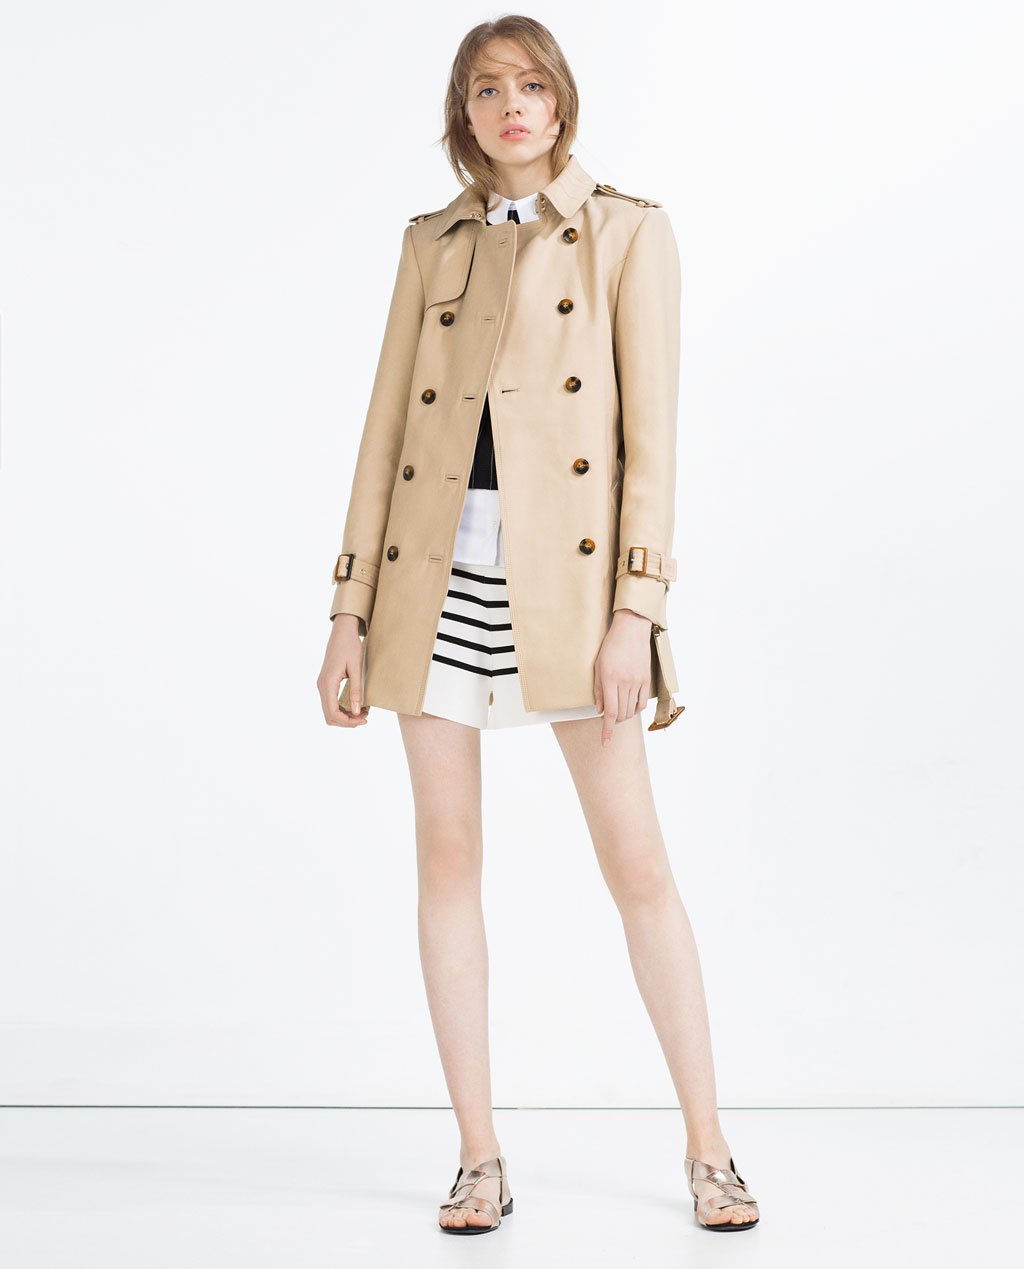 ZARA COTTON TRENCH COAT $149 | COLOR: CAMEL